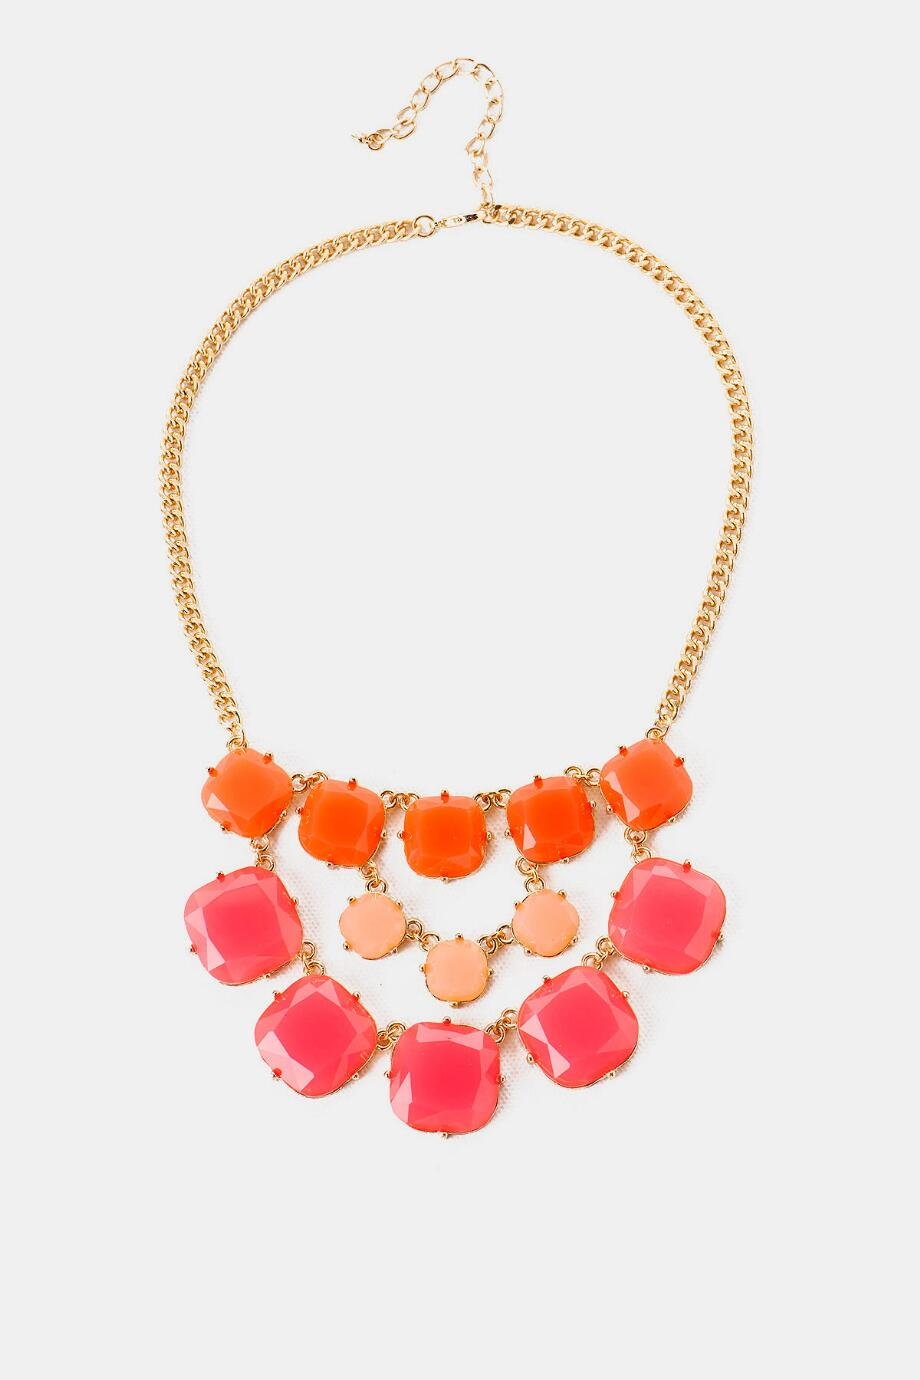 Caribbean Twist Jewel Necklace in Coral